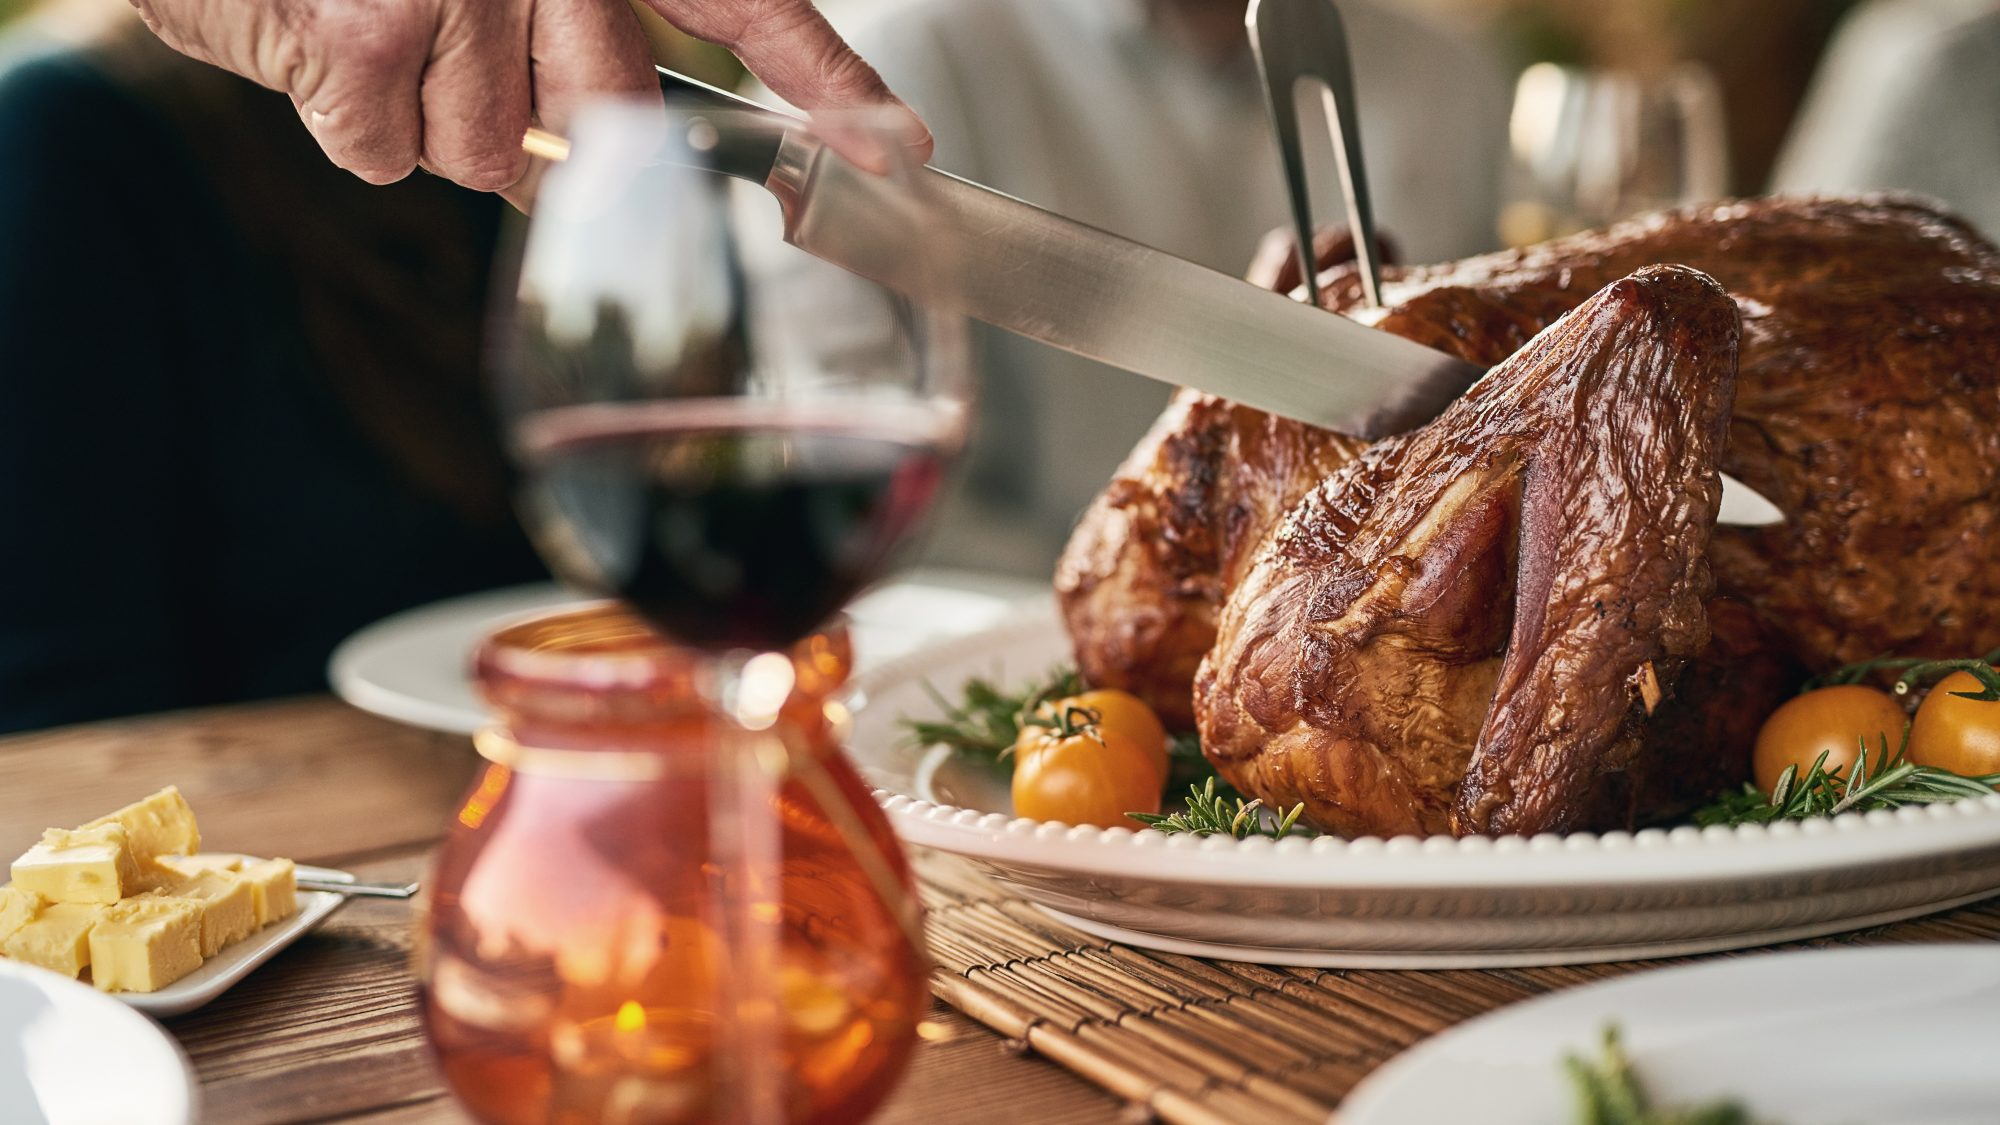 How to host Thanksgiving during coronavirus - safety tips for Thanksgiving (outdoor Thanksgiving turkey carving)